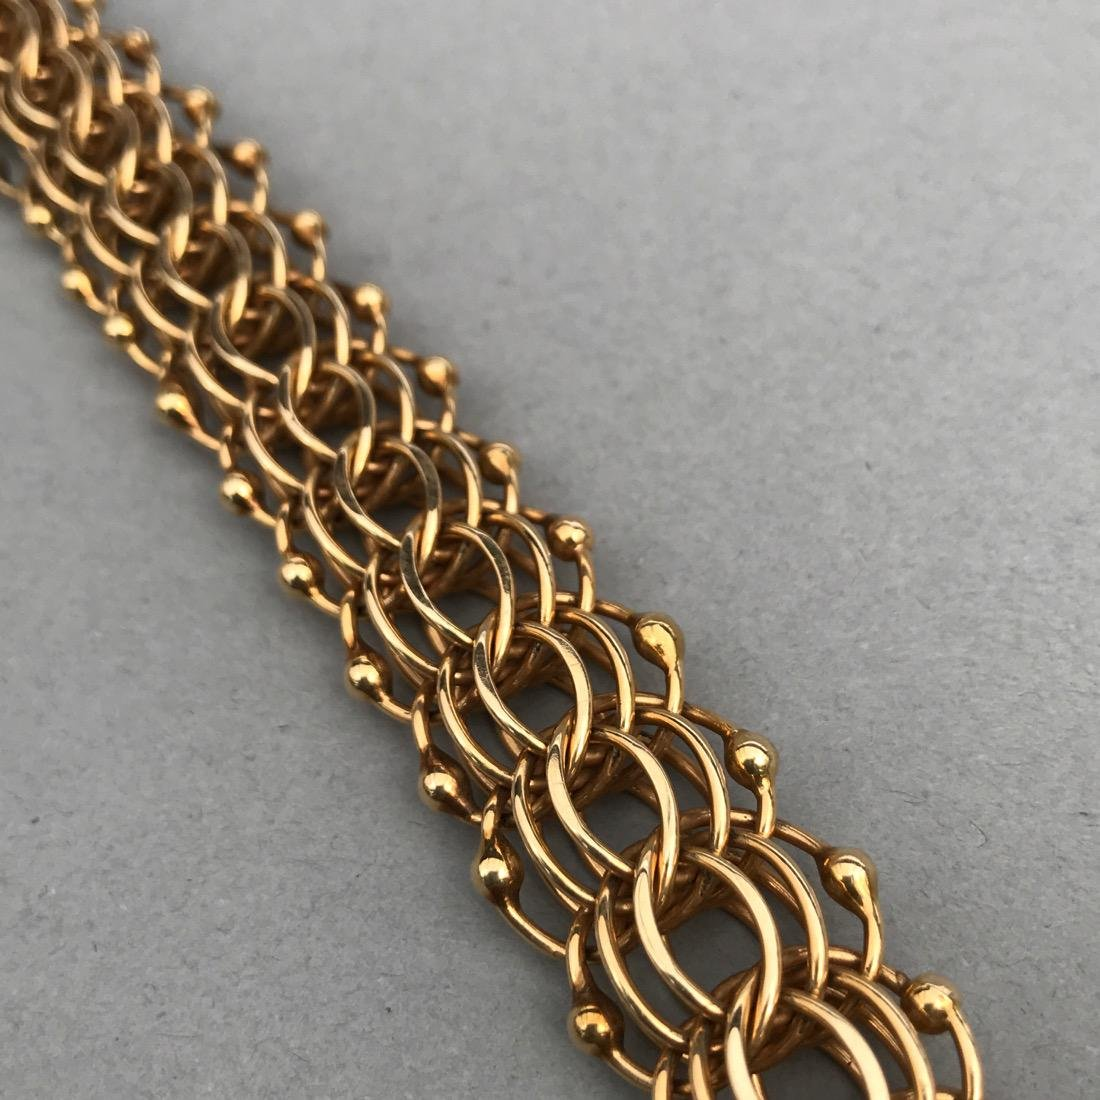 14K Gold Large Chainmail Style Bracelet - 4